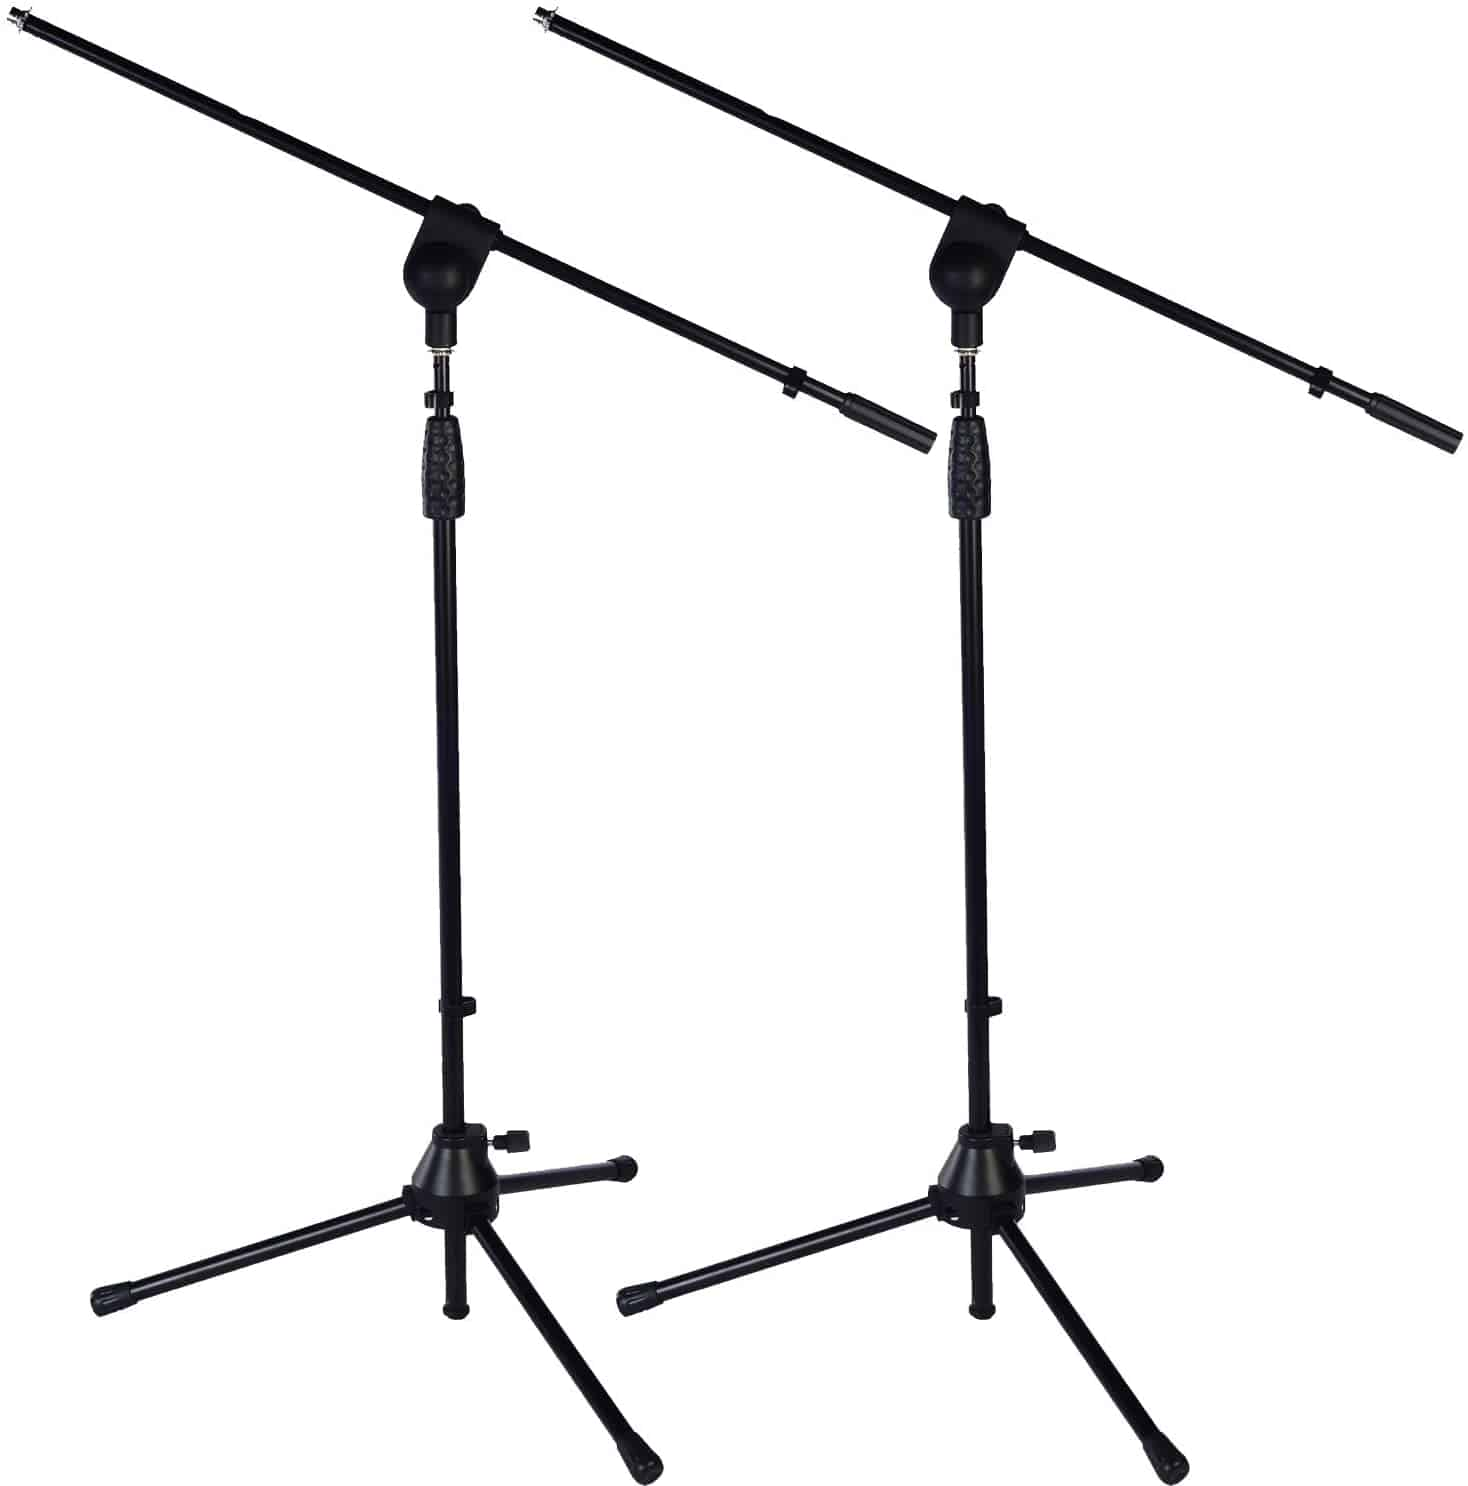 Best choir boom stand two-pack: LyxPro Podium